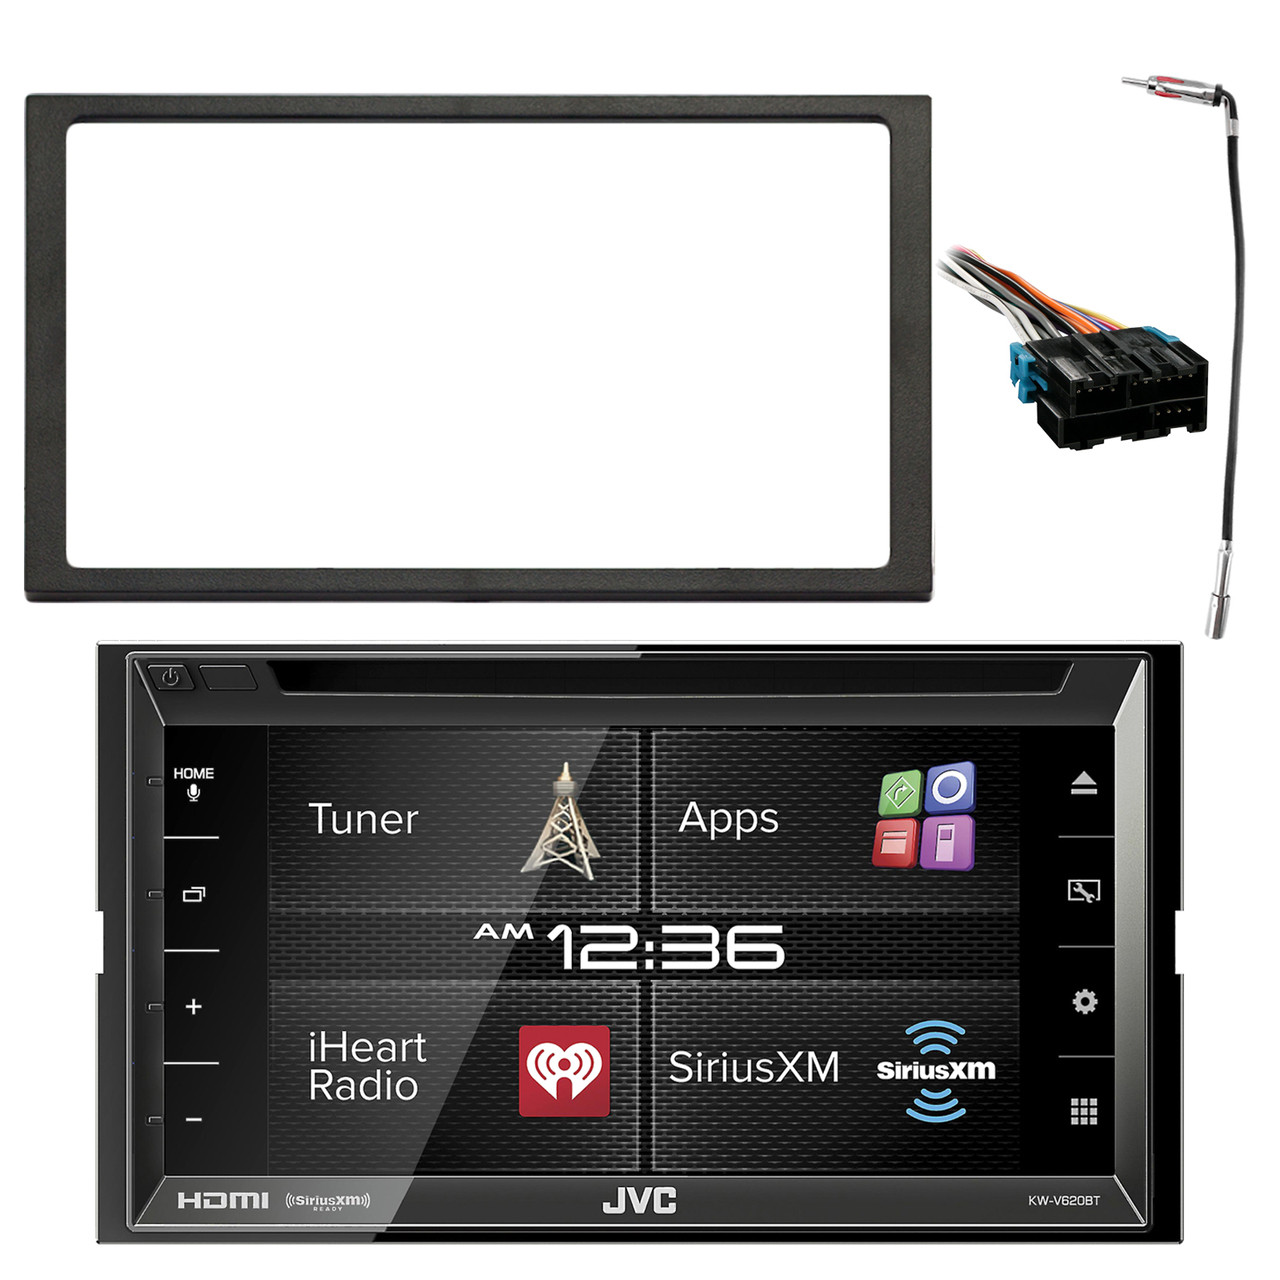 jvc kw v620bt 6 8 display double din bluetooth in dash car stereo pyle wiring harness s10 radio adapter [ 1280 x 1280 Pixel ]